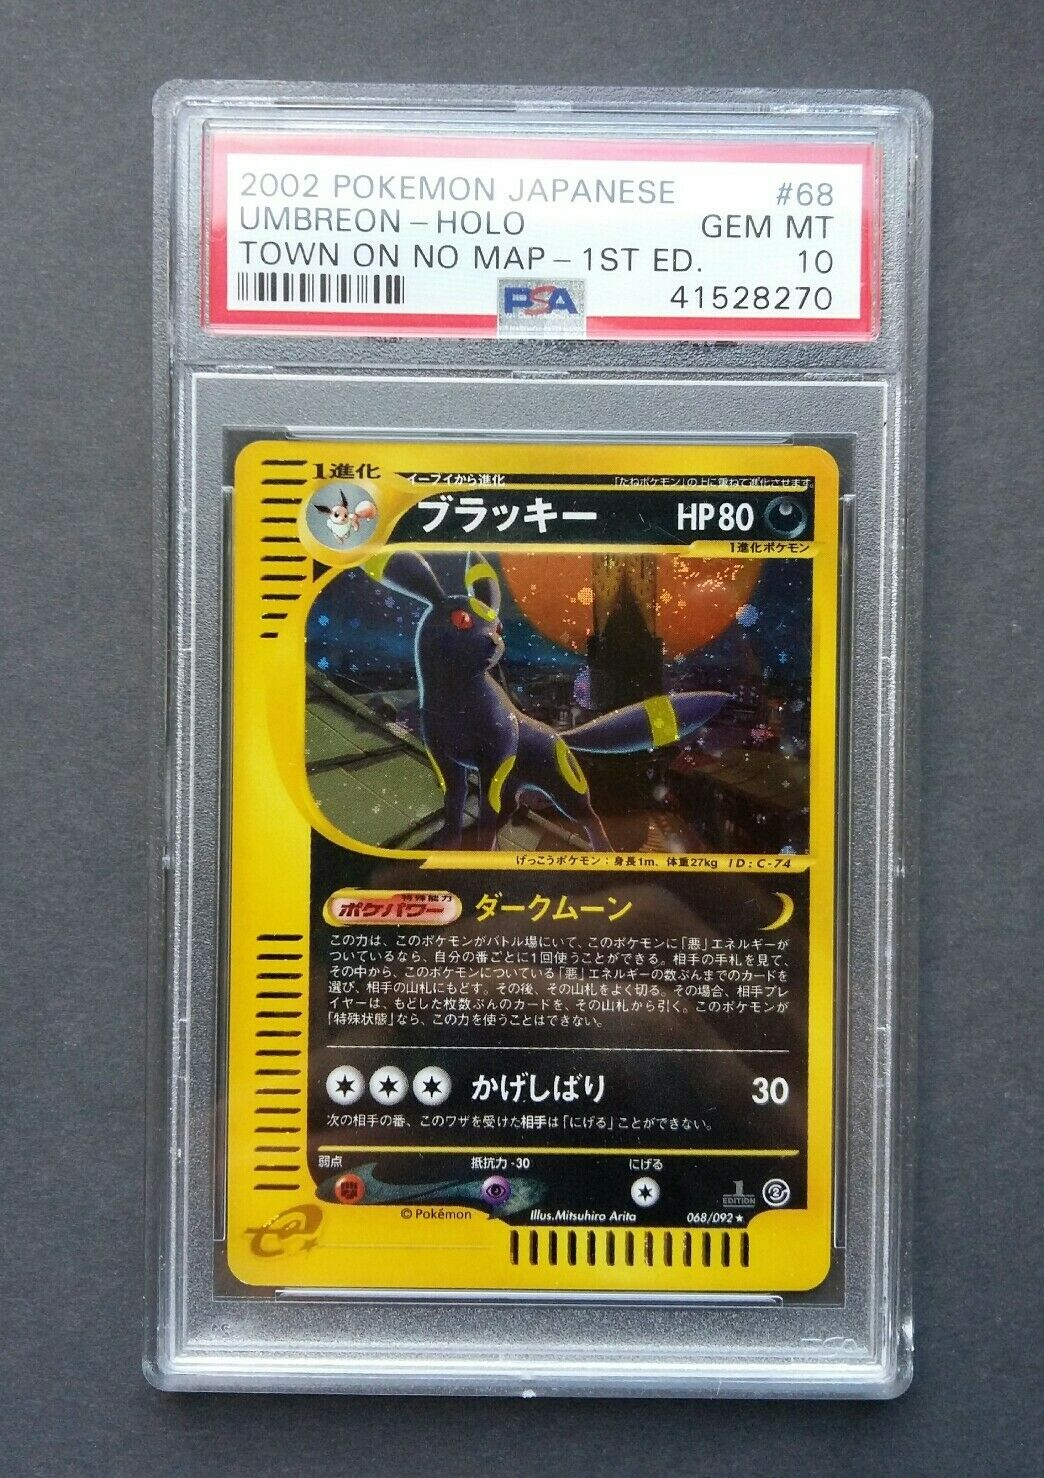 PSA 10 Umbreon Town on no map Holo 068092 Pokemon Card JAP